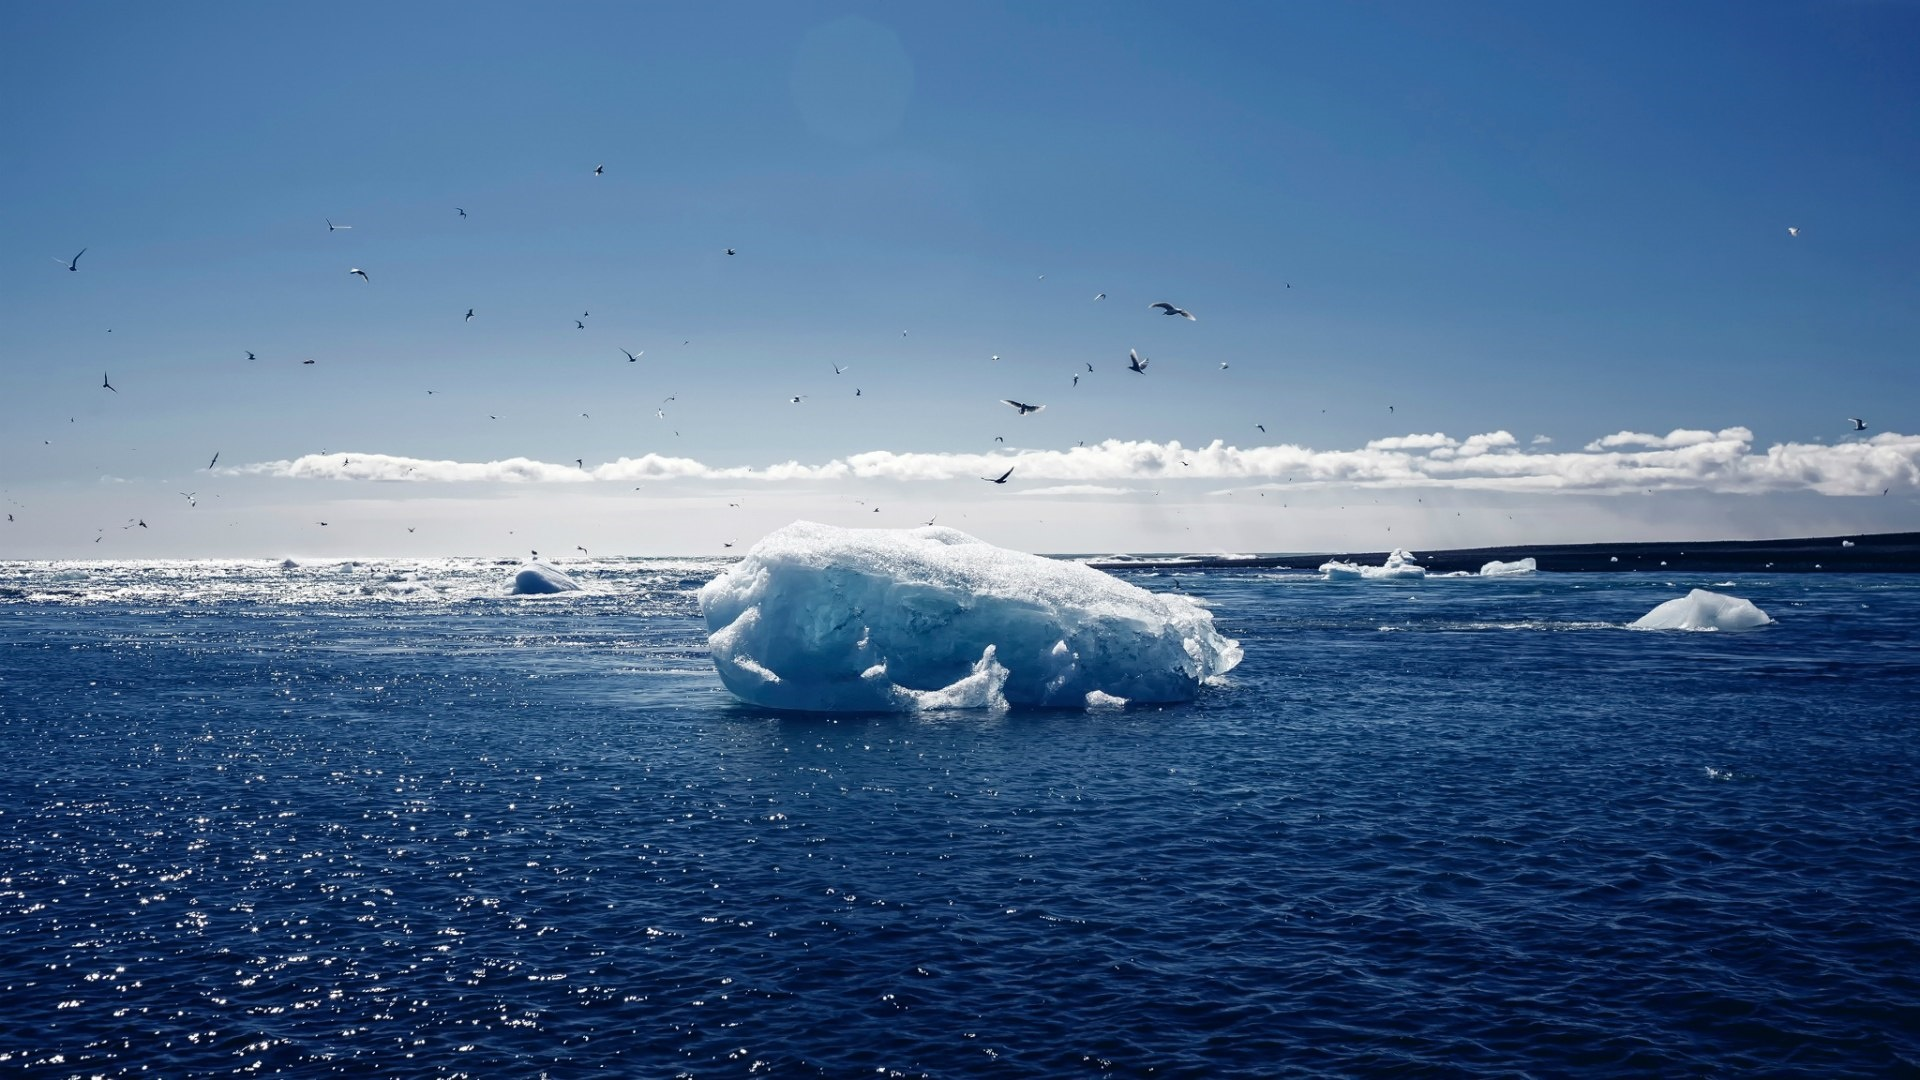 Iceberg in the middle of the ocean wallpaper